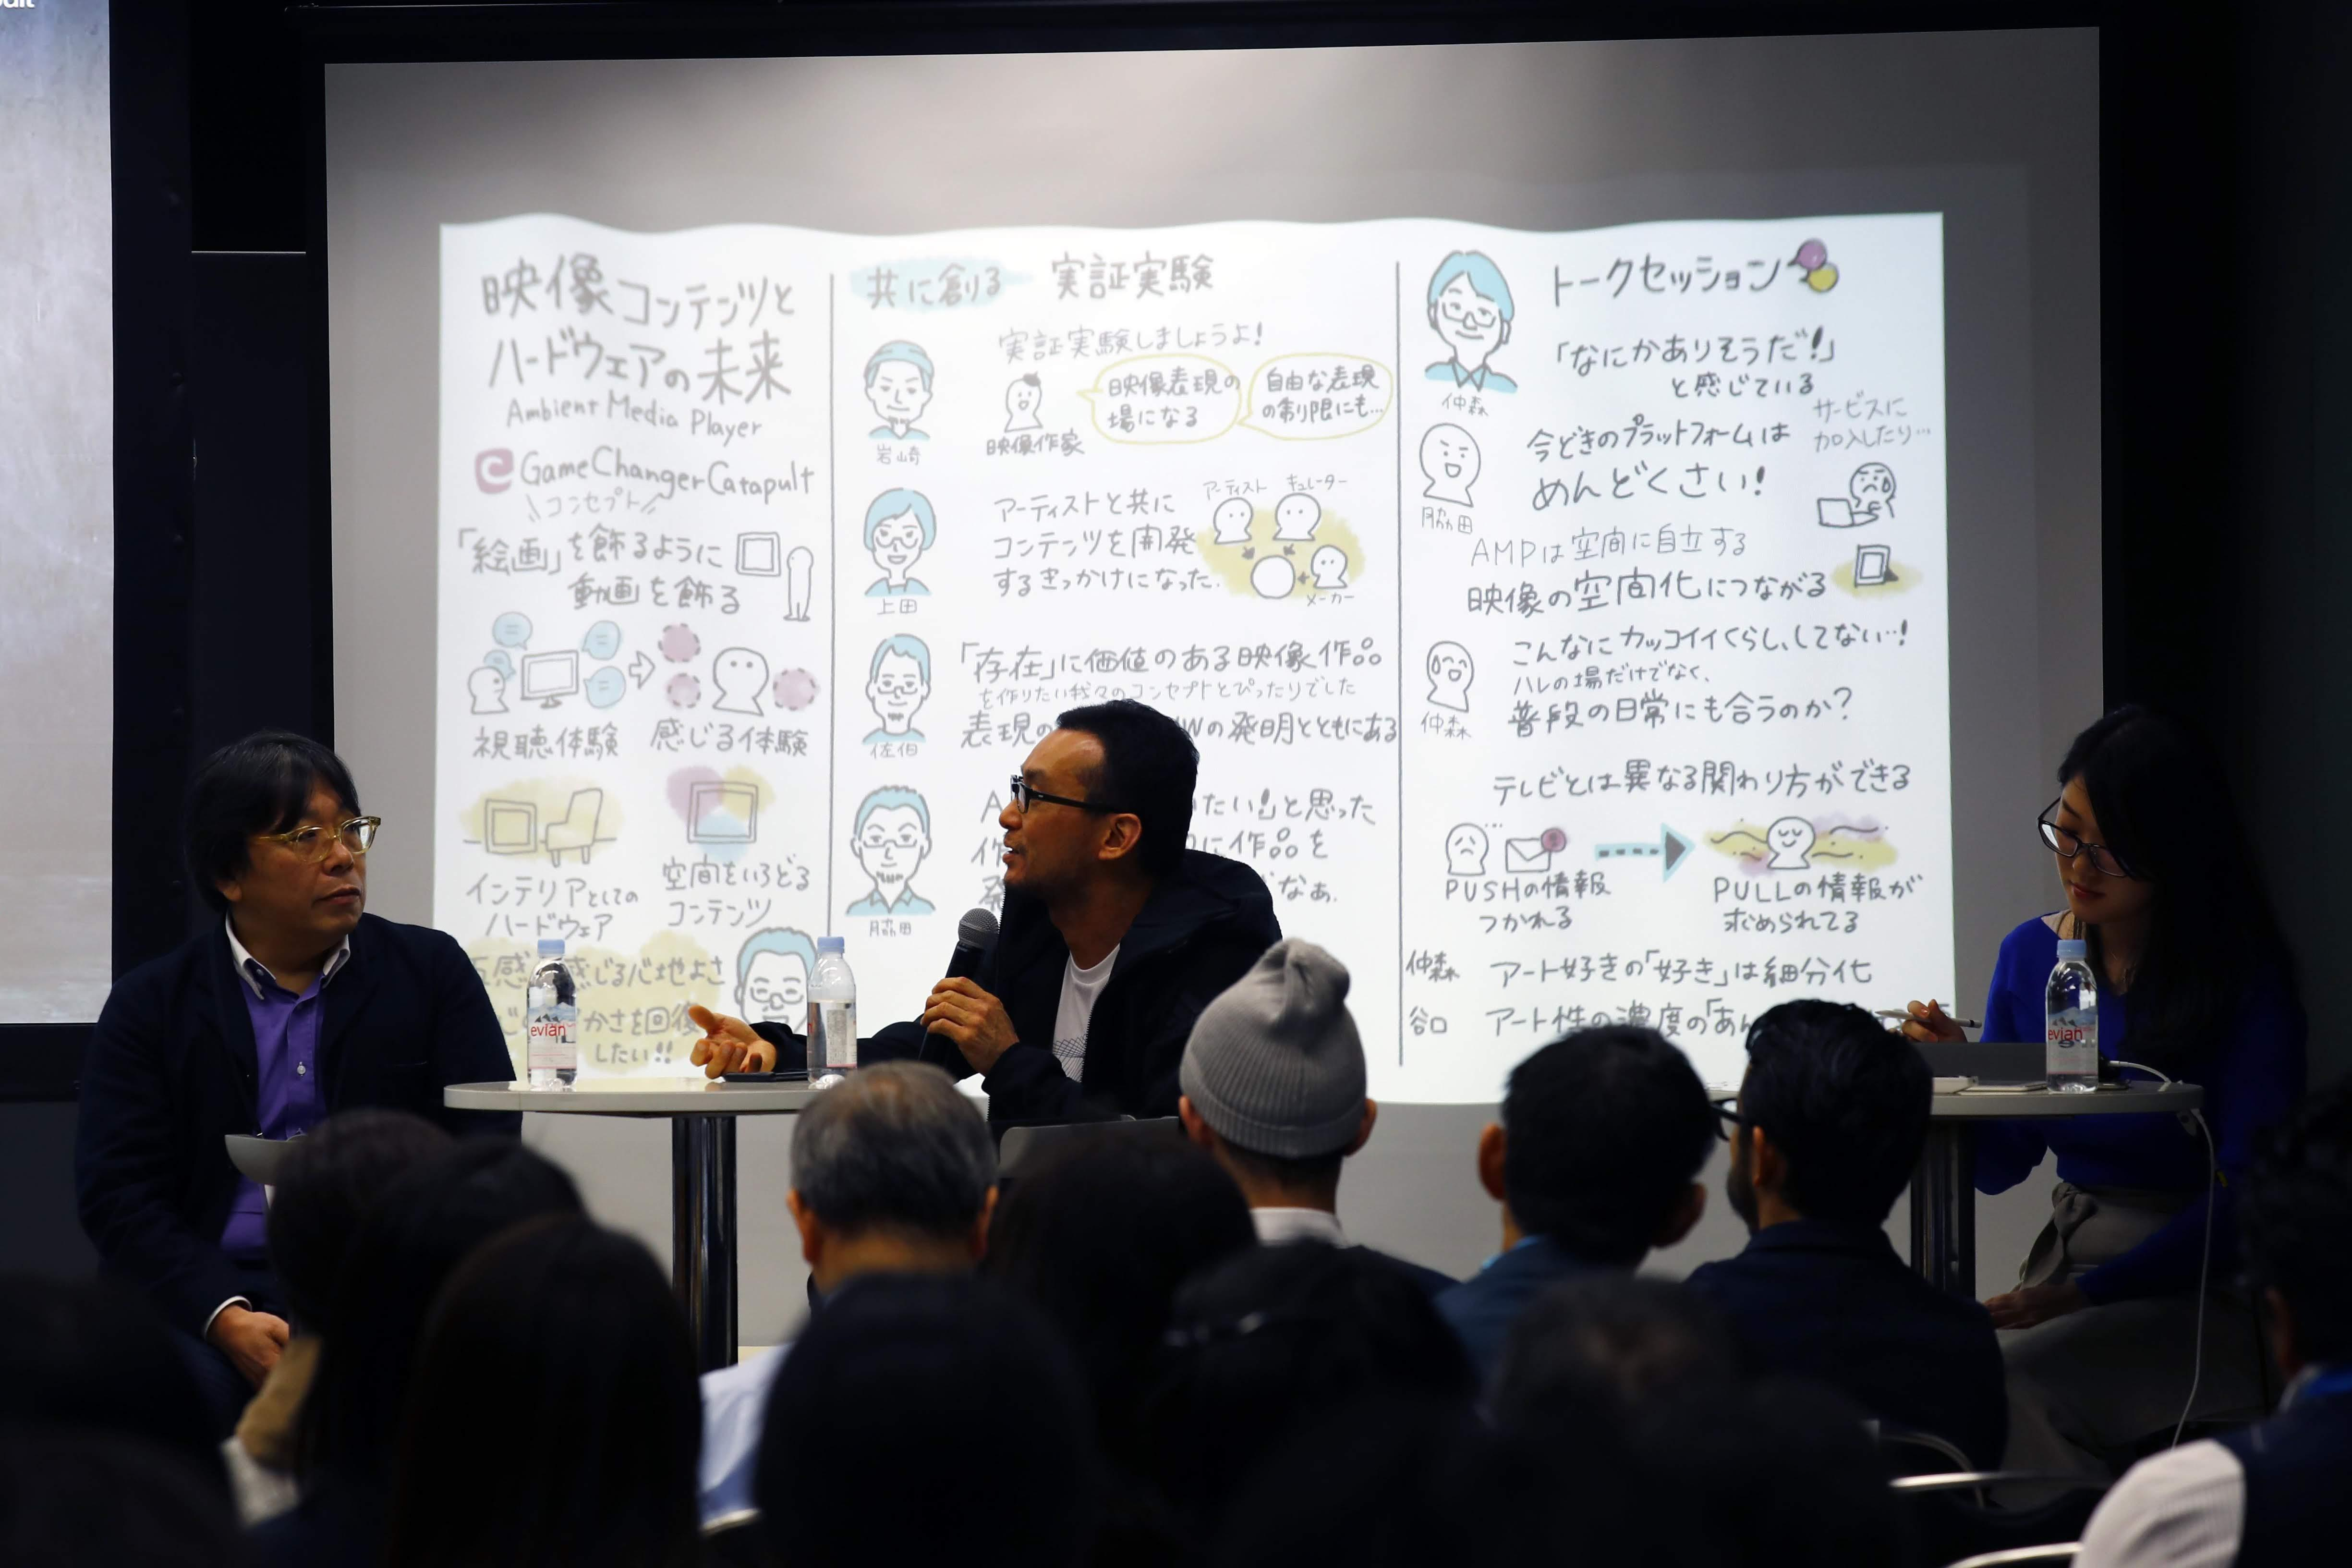 Seminar: The Future of Video Content and Hardware ~ Ambient Media Player ~ / 映像コンテンツとハードウェアの未来